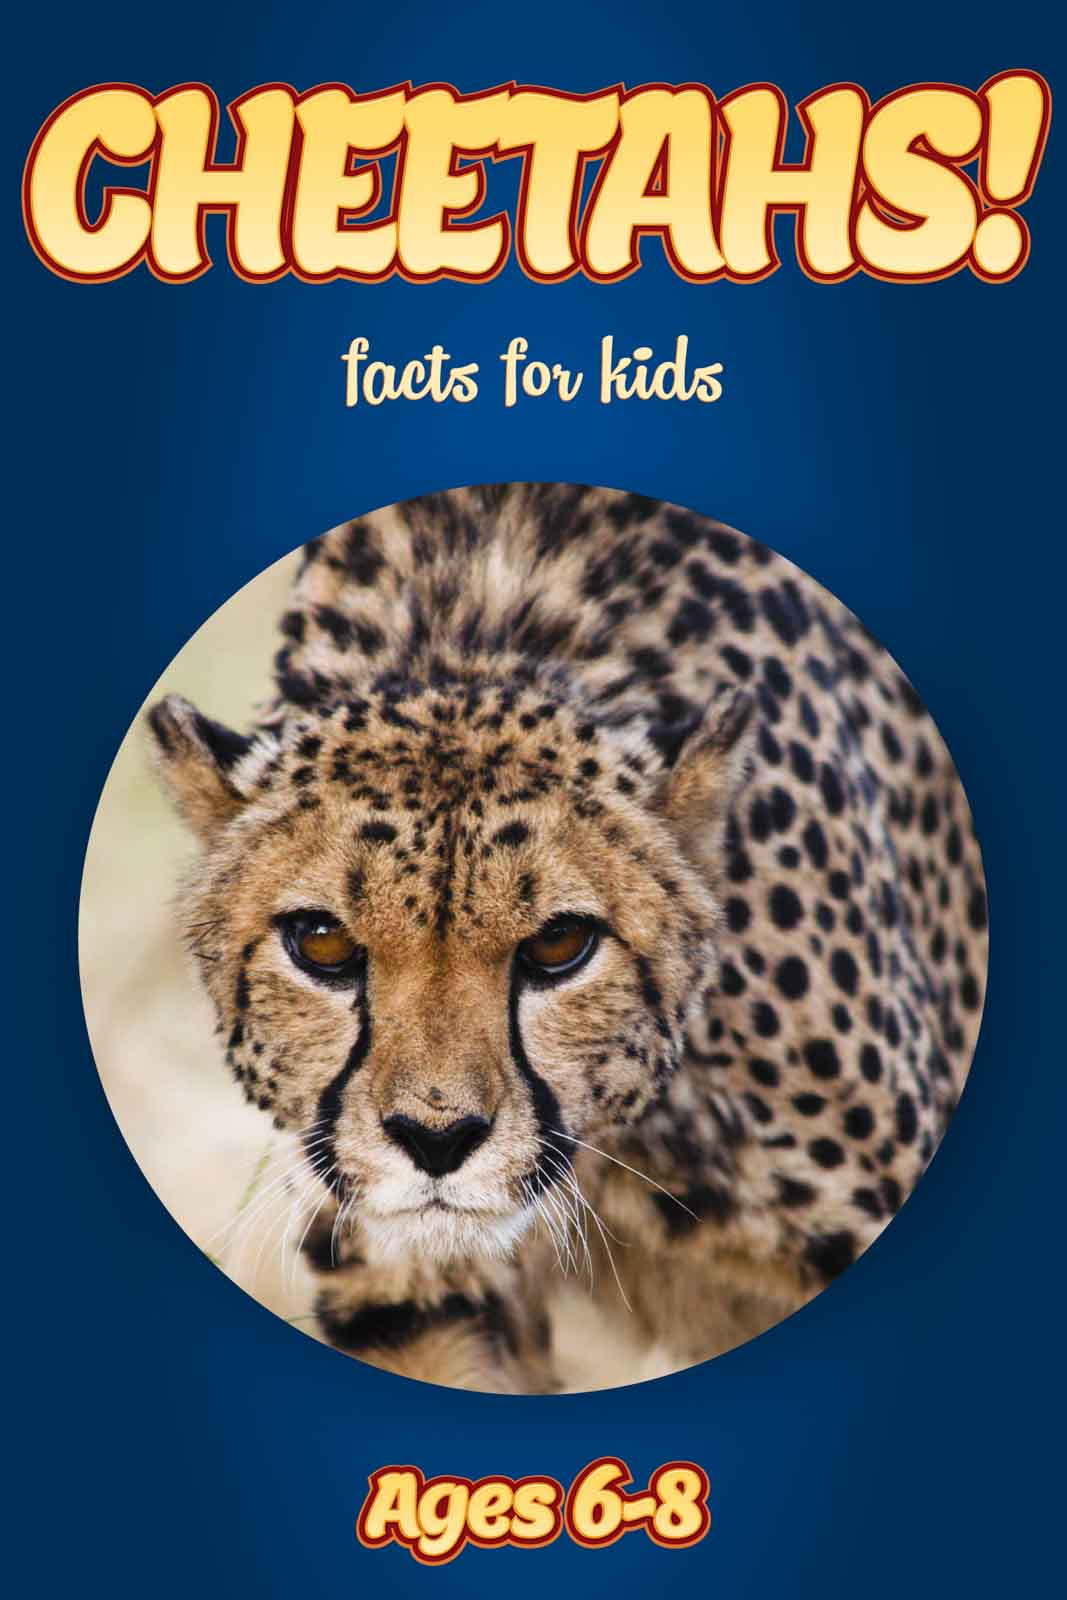 Leoard Facts for Kids | Kids Nonfiction Book | Clouducated | Ages 6-8